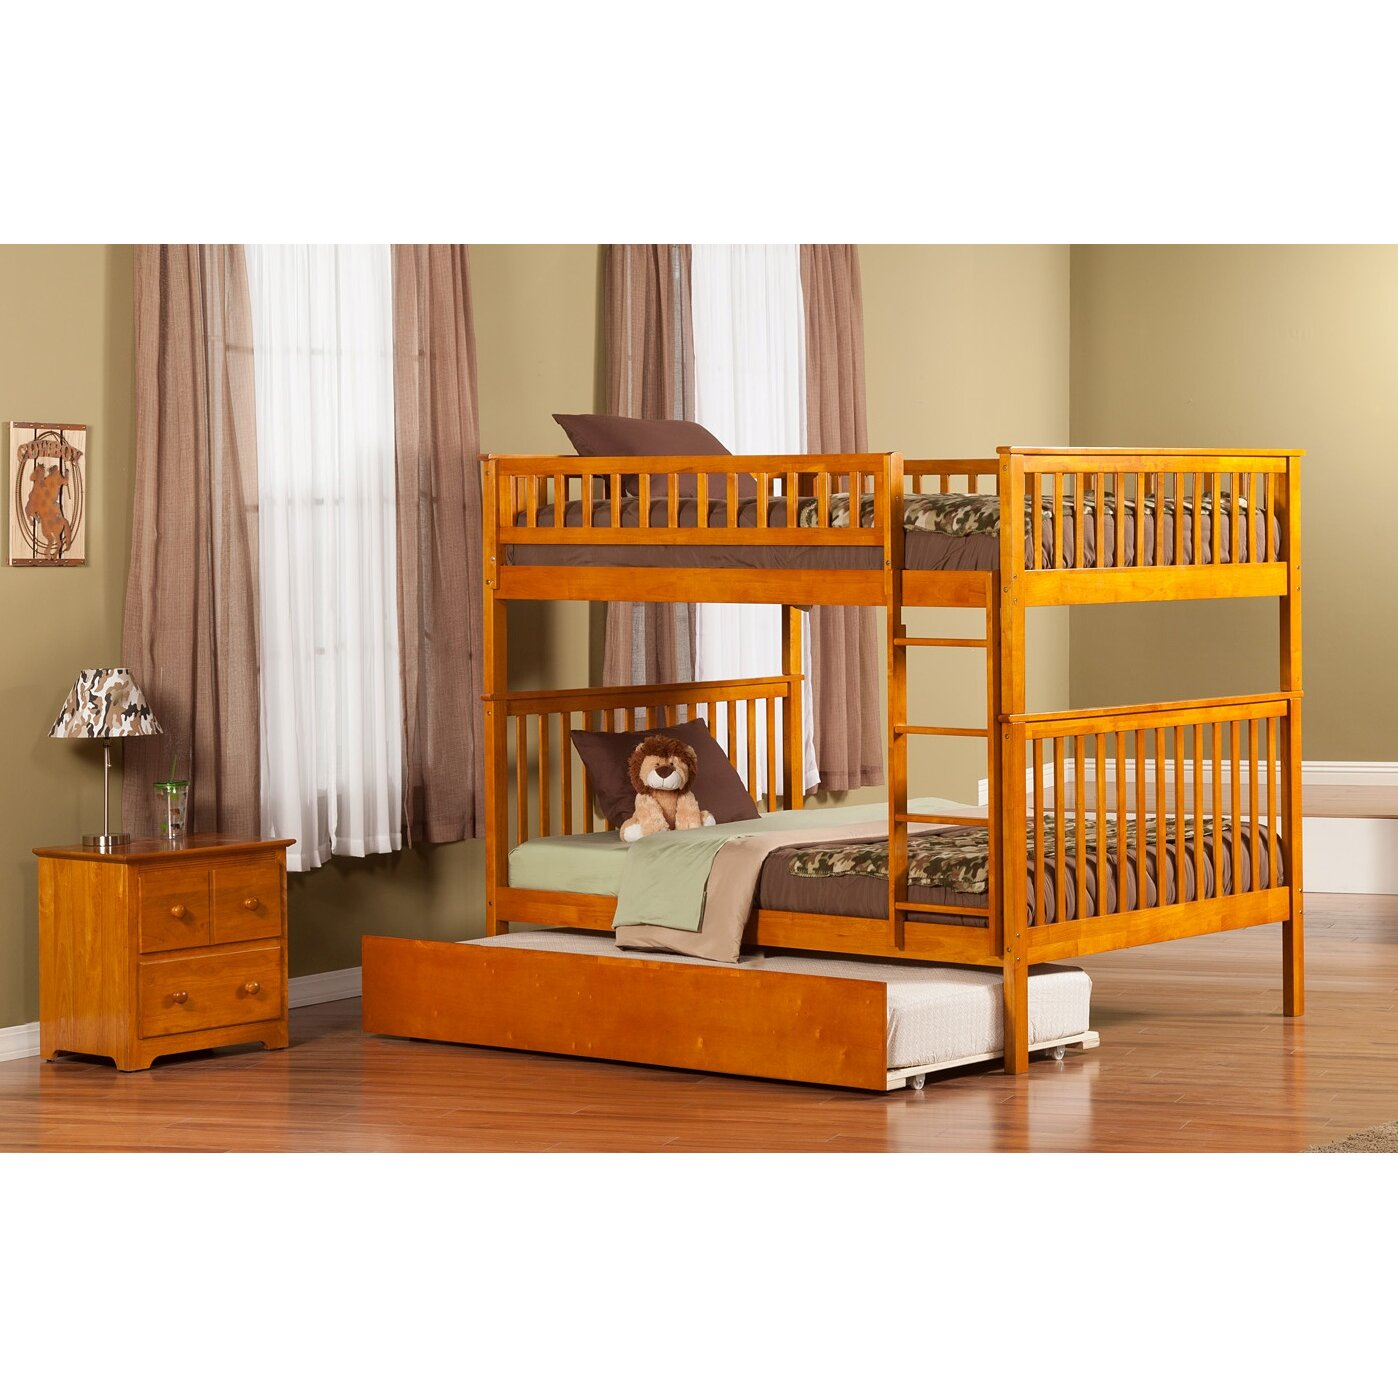 Atlantic Furniture Woodland Full over Full Bunk Bed with